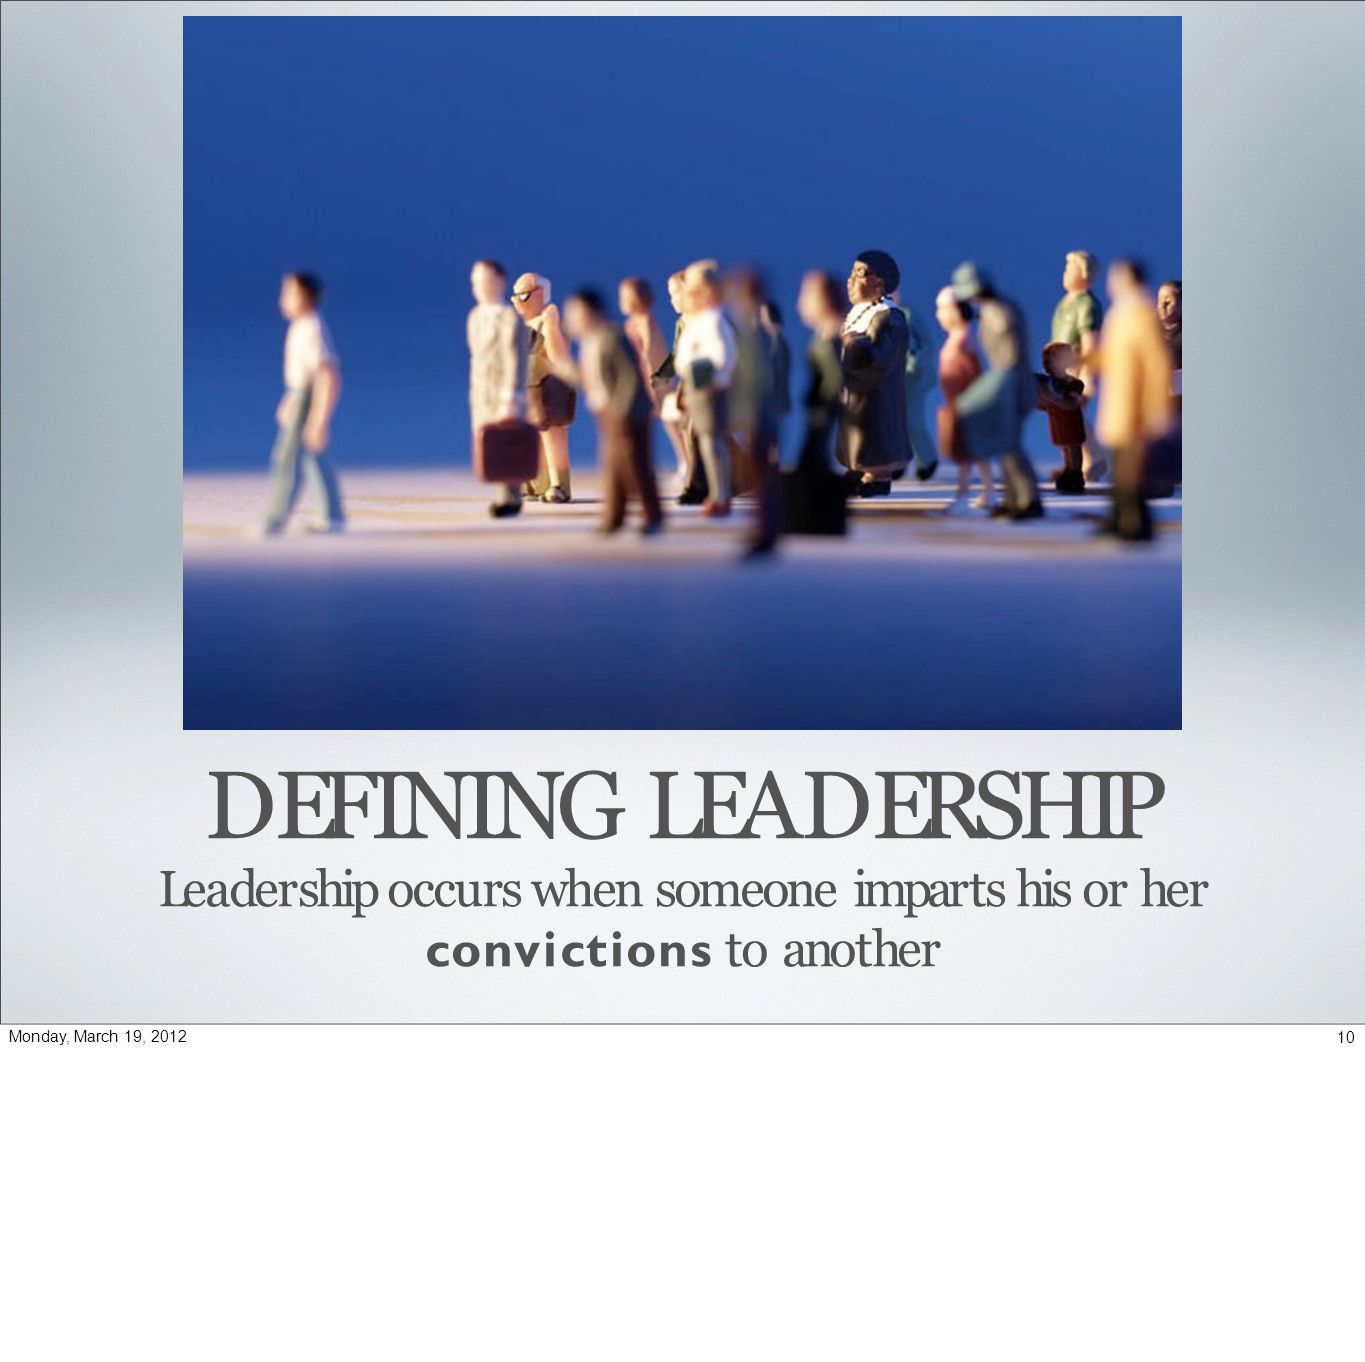 DEFINING LEADERSHIP Leadership occurs when someone imparts his or her convictions to another 10Monday, March 19, 2012